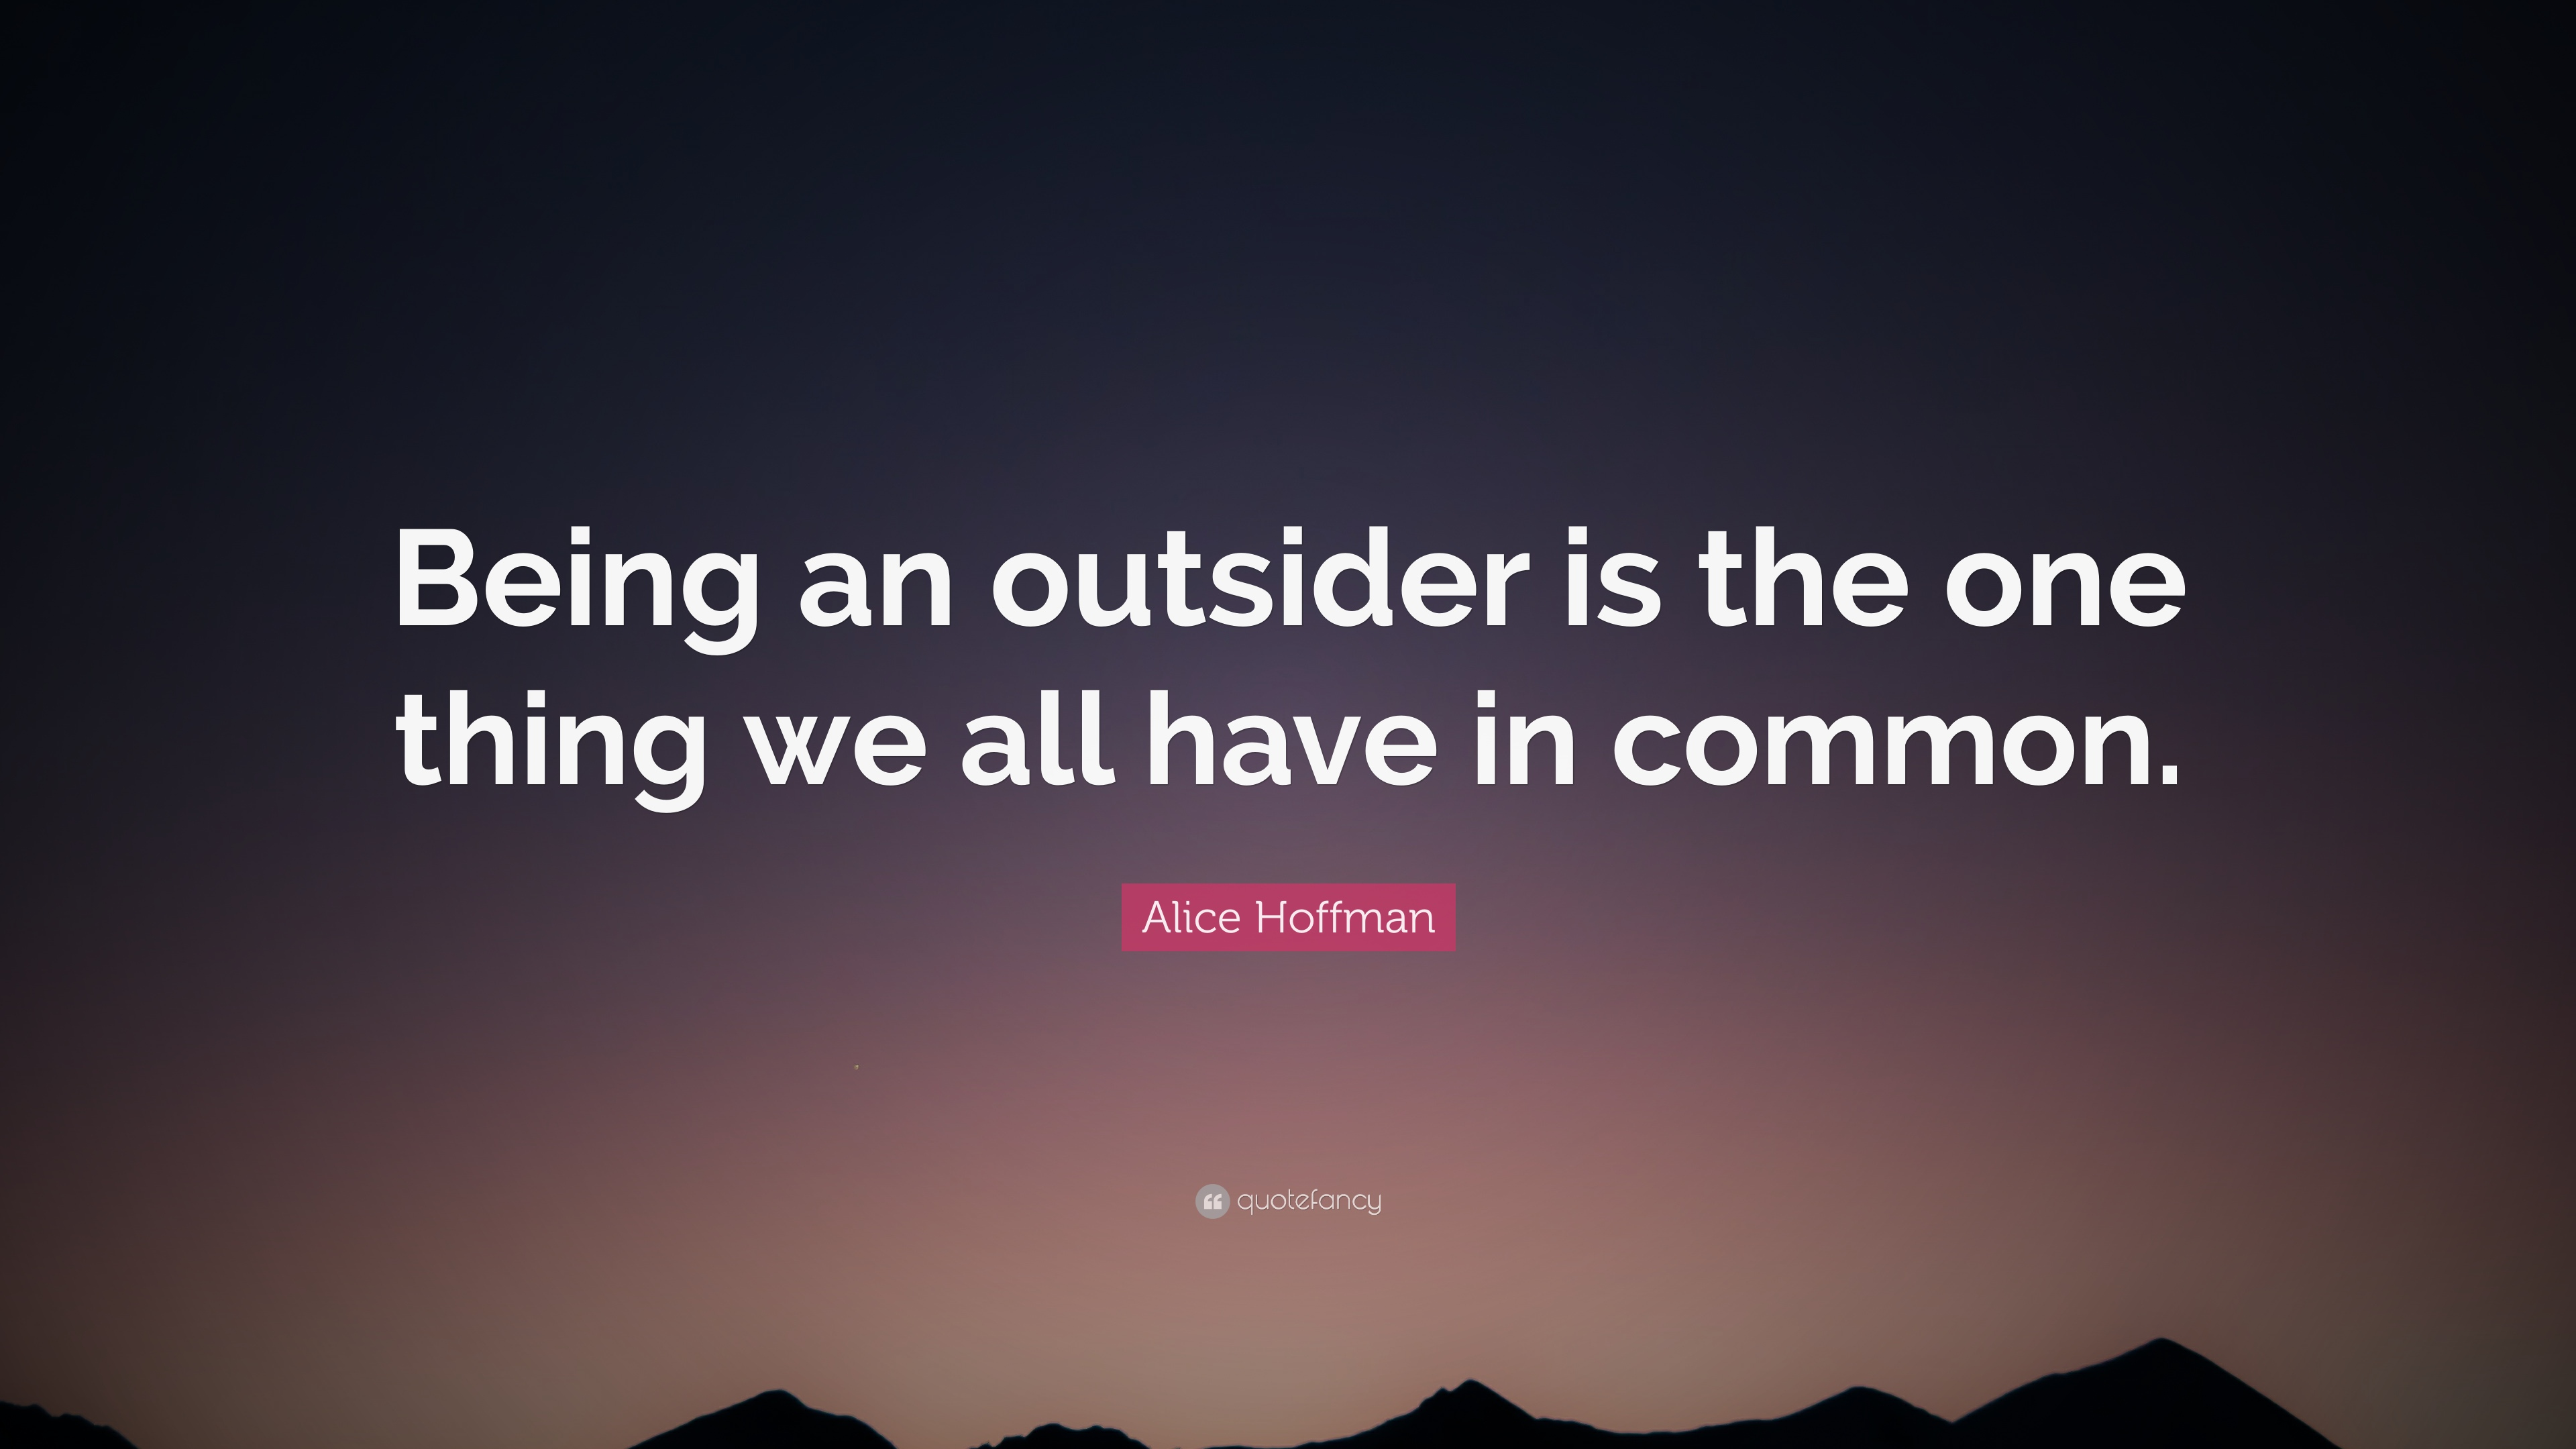 Alice Hoffman Quote Being An Outsider Is The One Thing We All Have